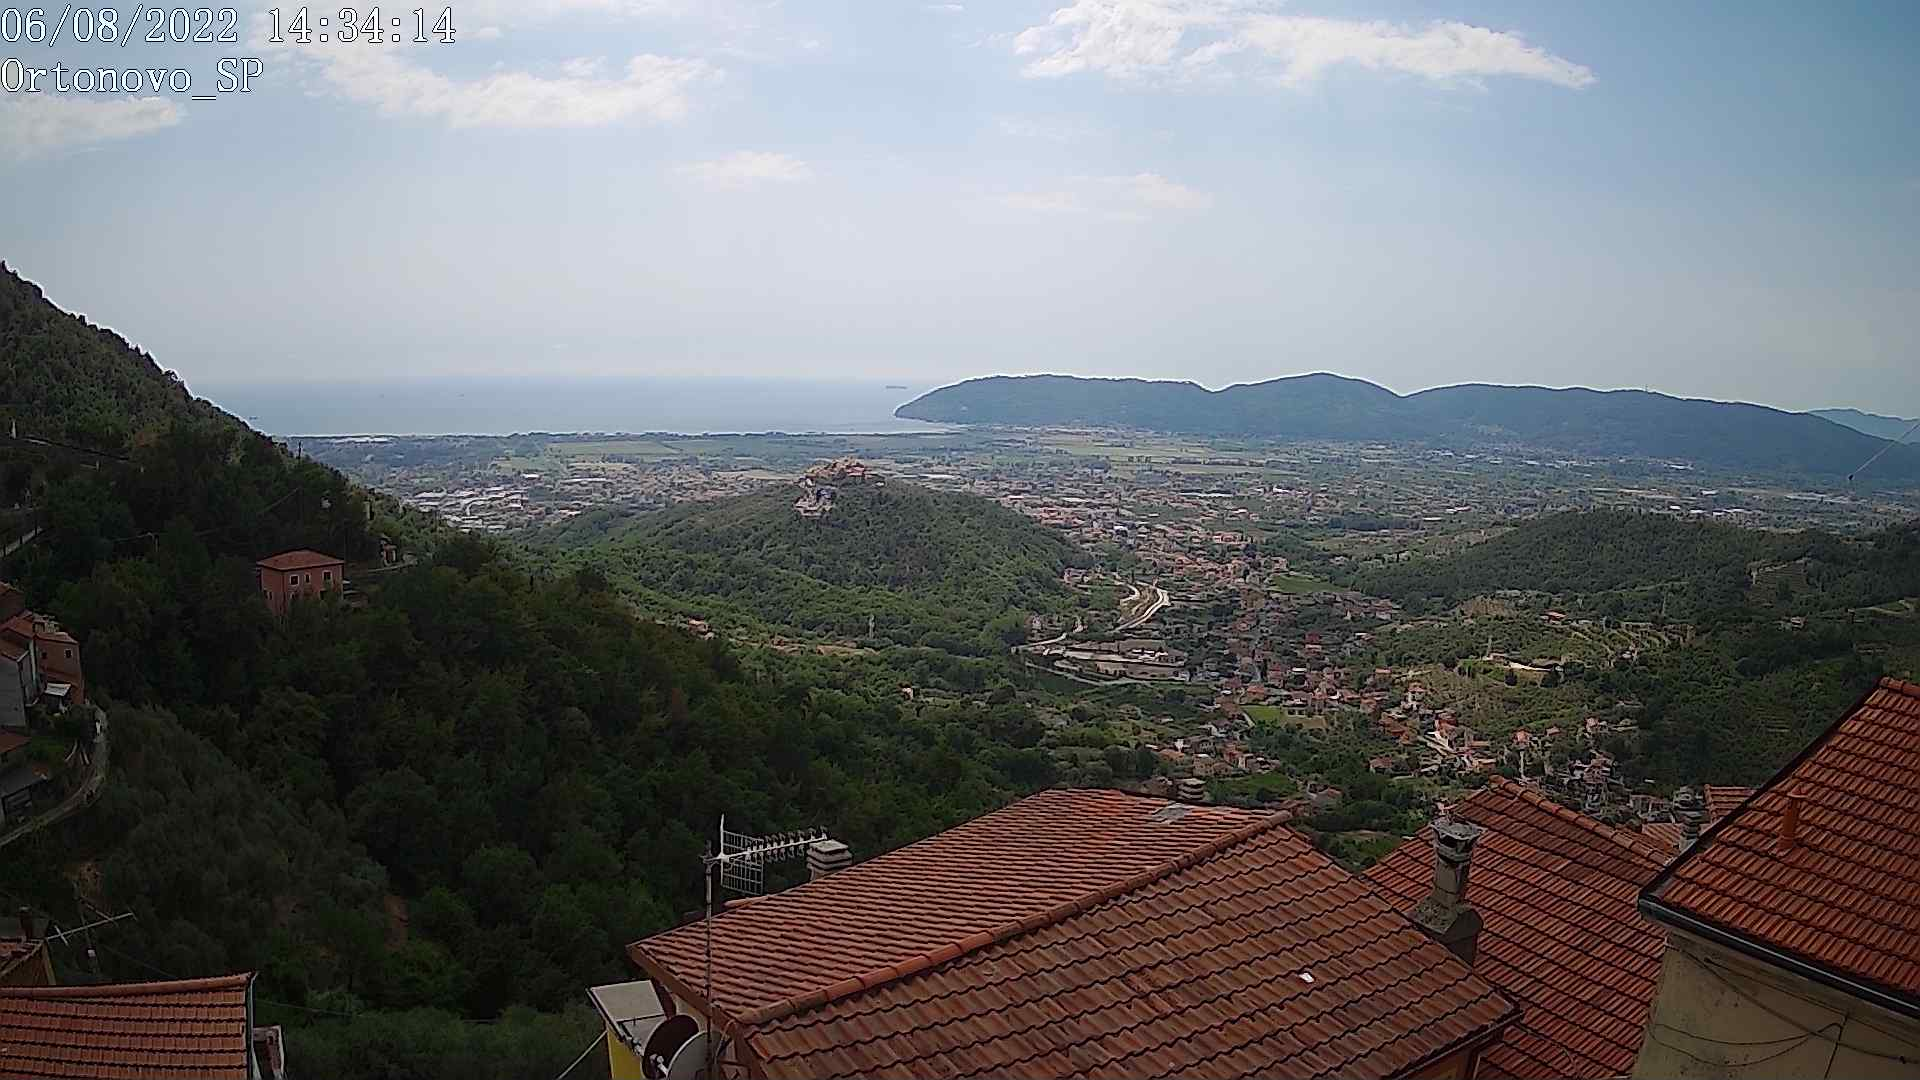 webcam ortonovo